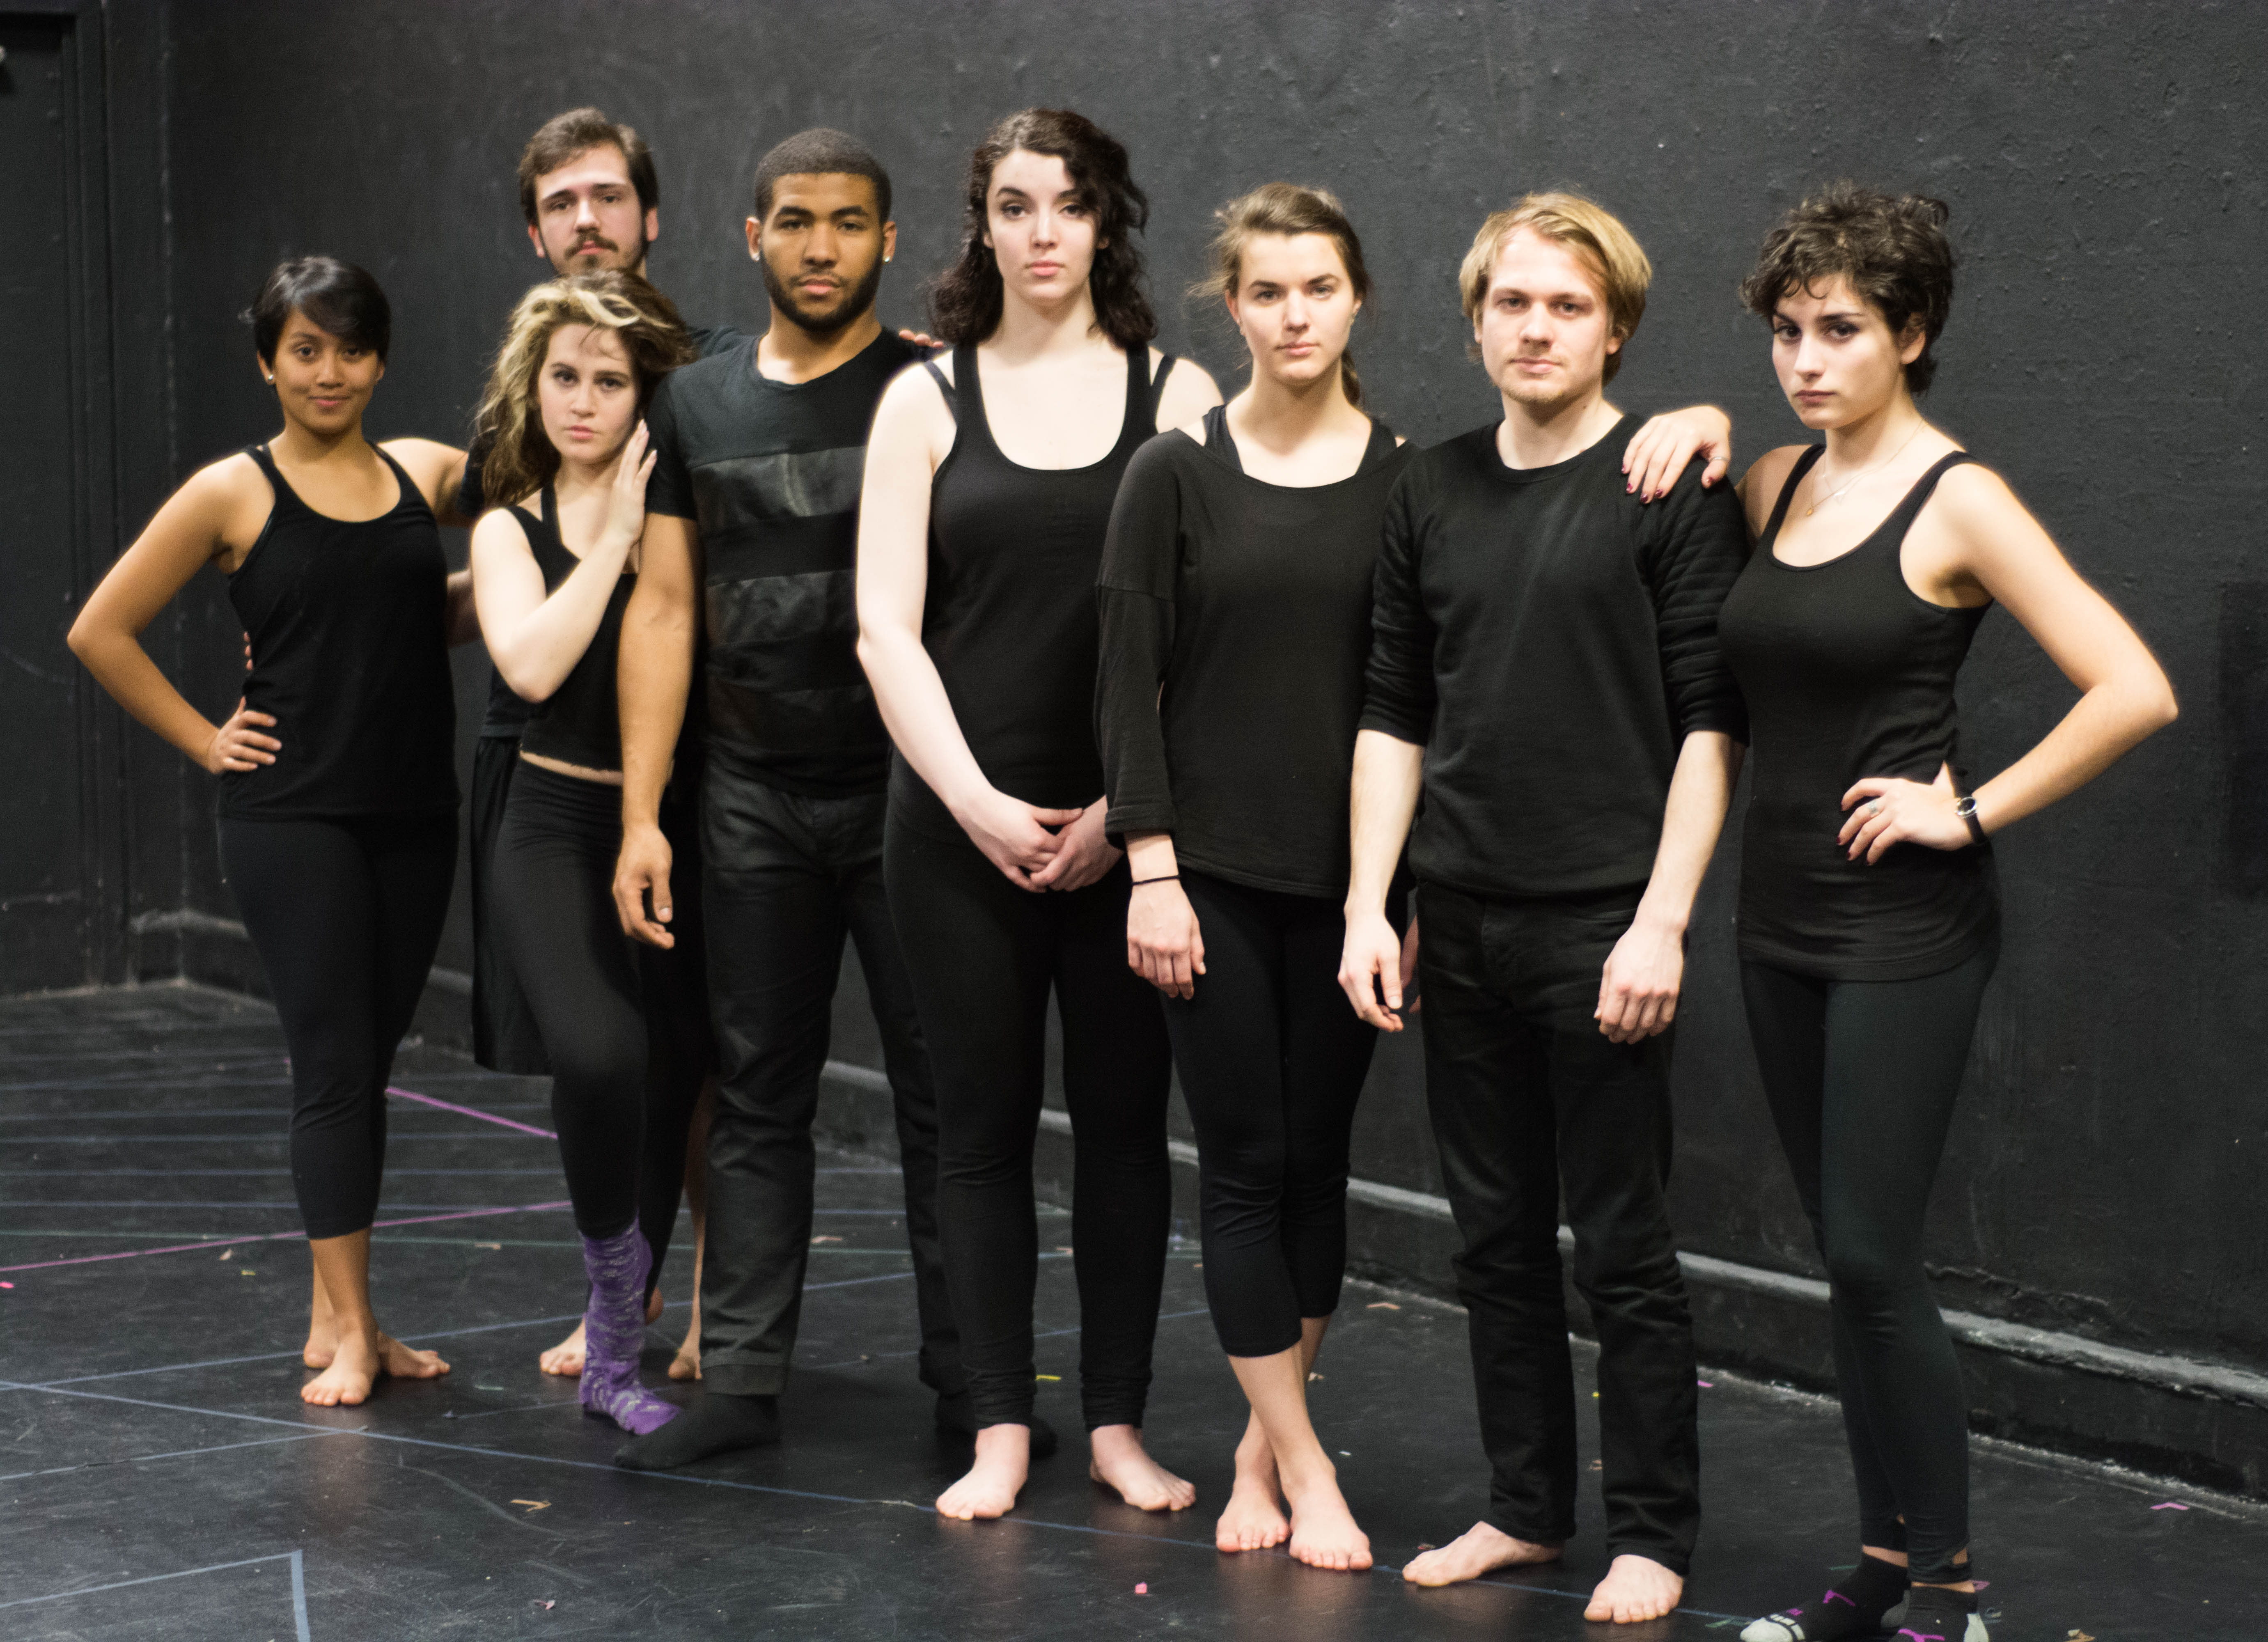 Cast of The Serpent Woman